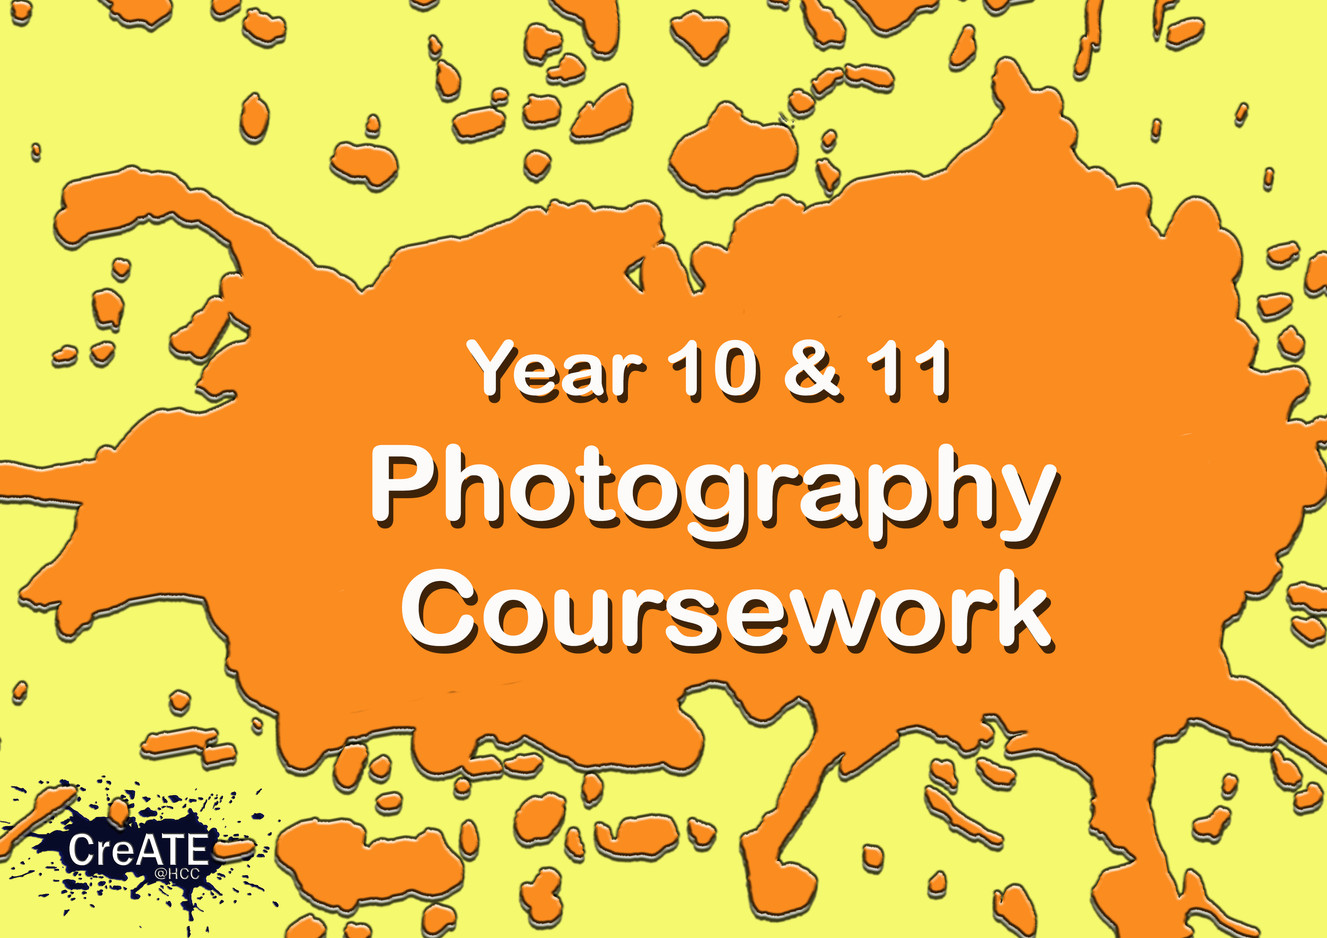 Year 10 & 11 Photgraphy Coursework